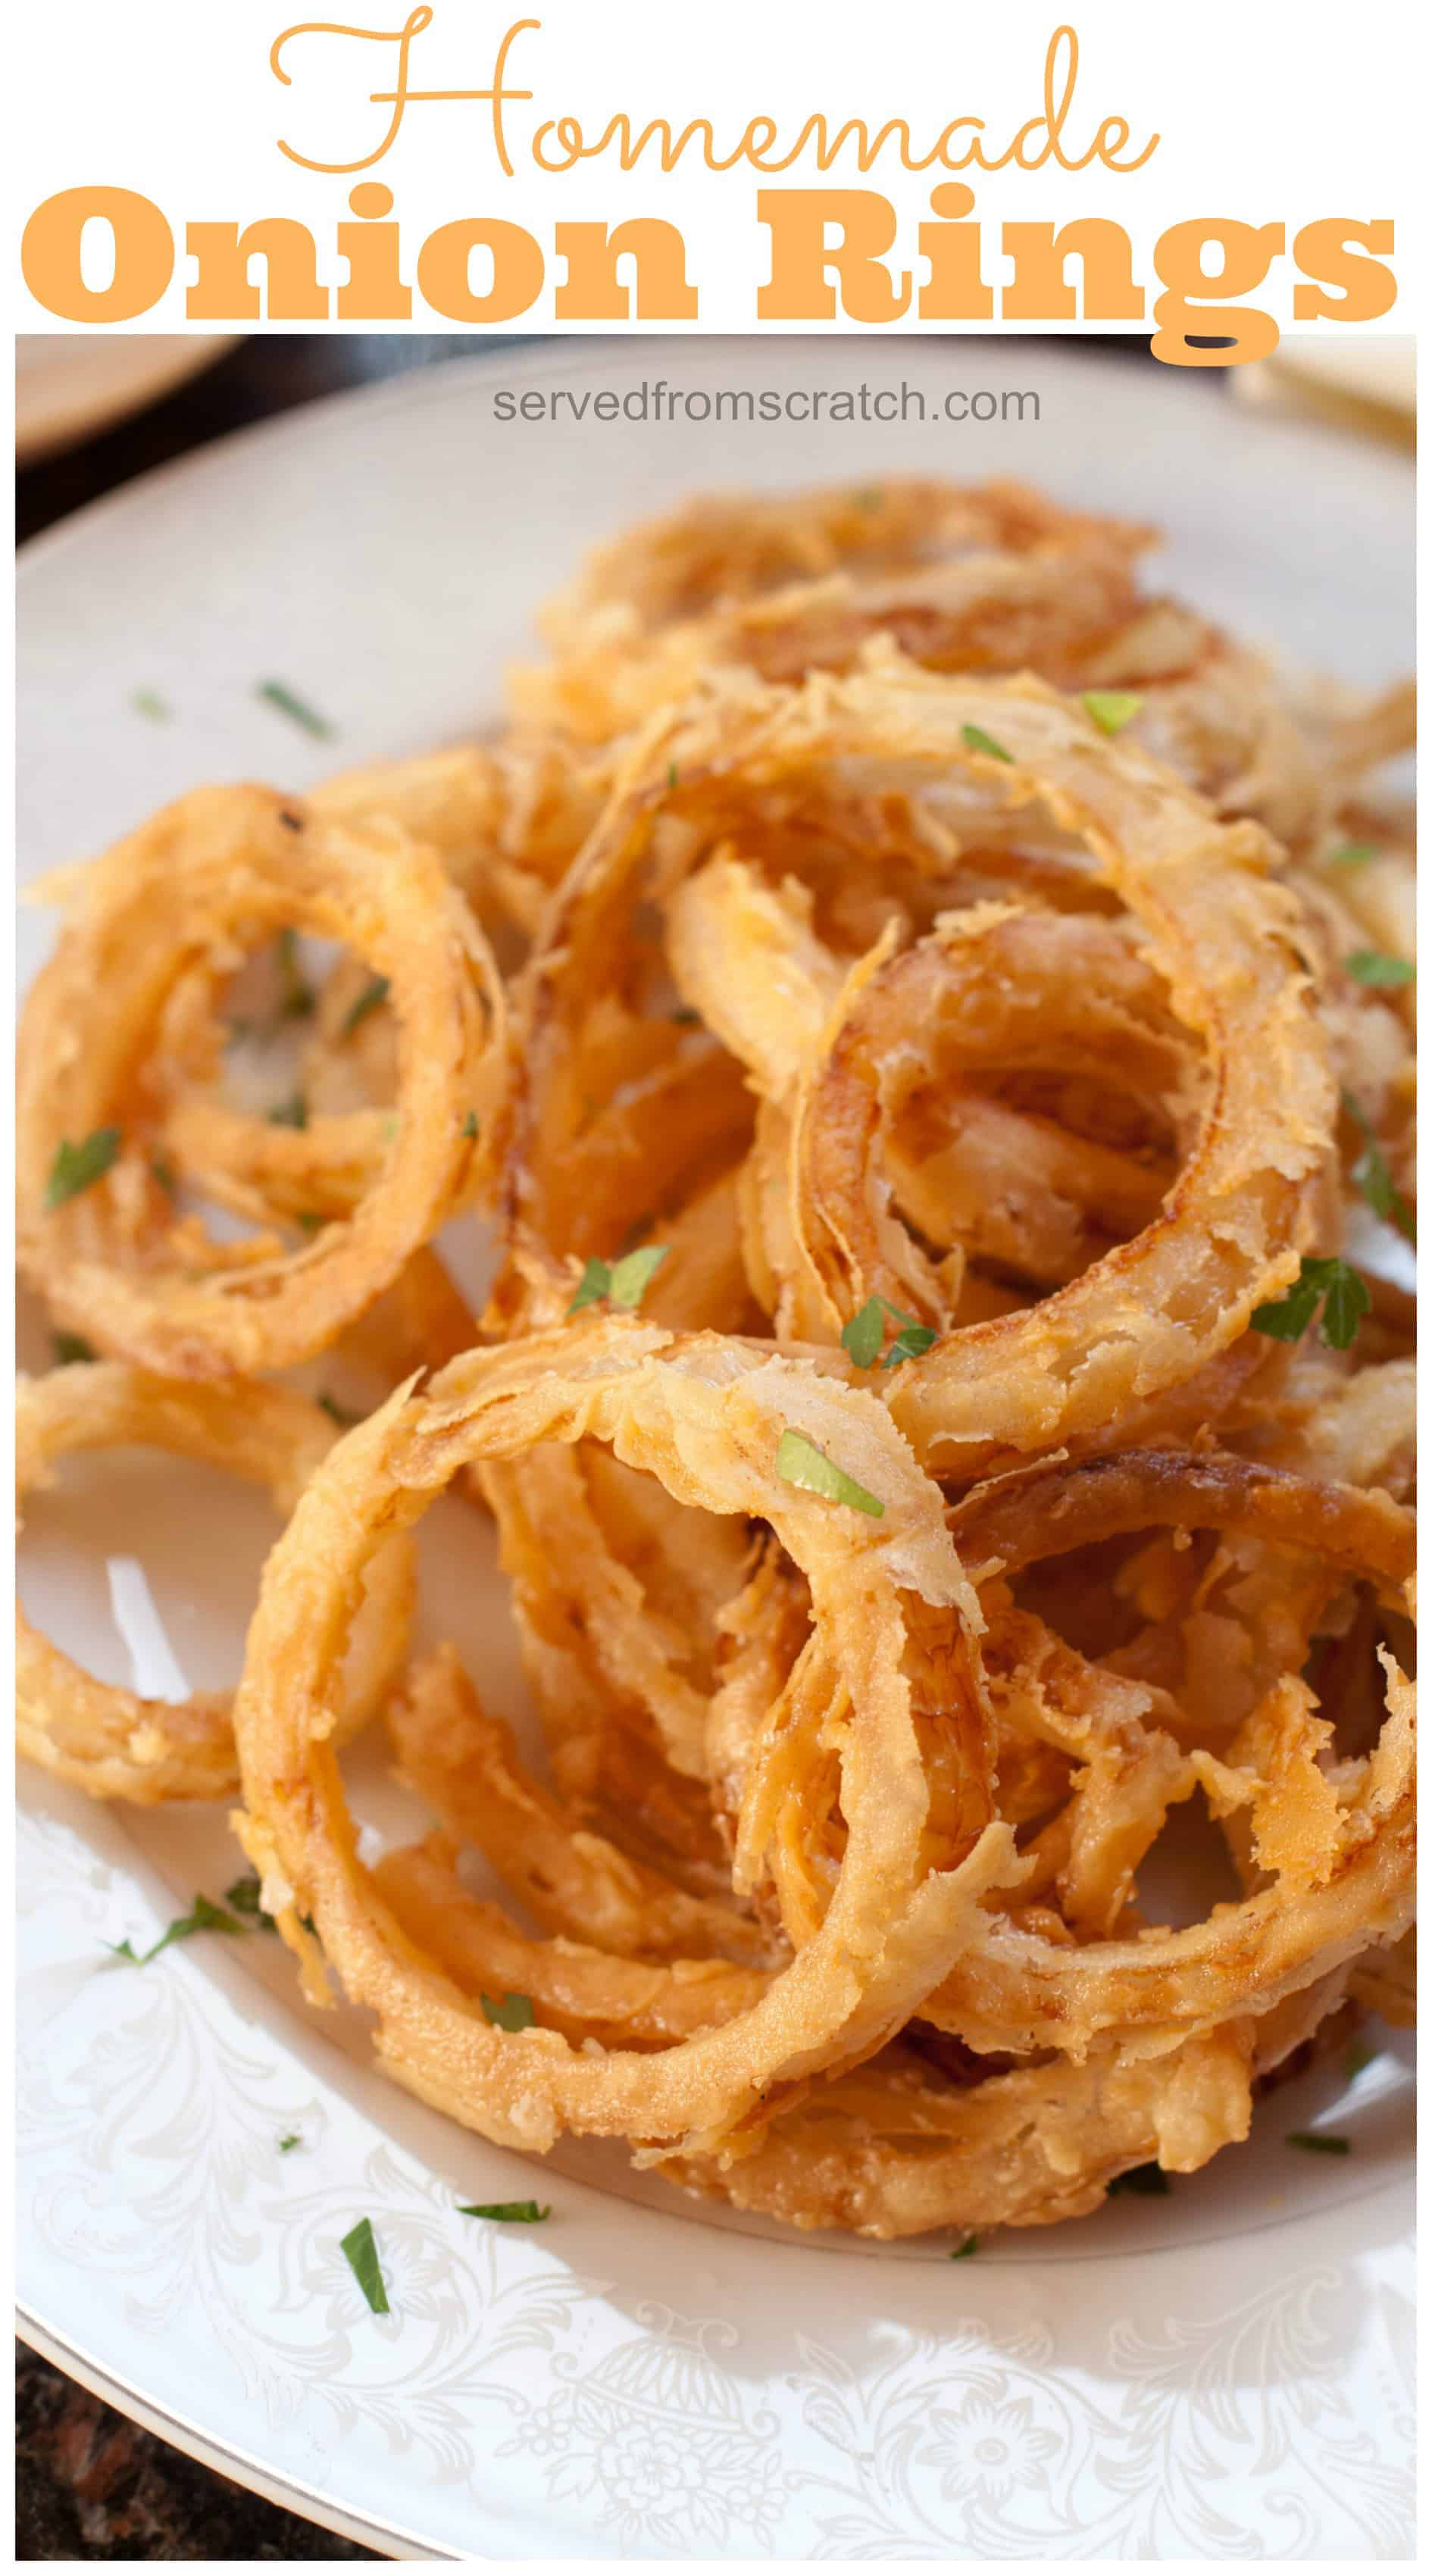 How To Make Onion Rings From Scratch